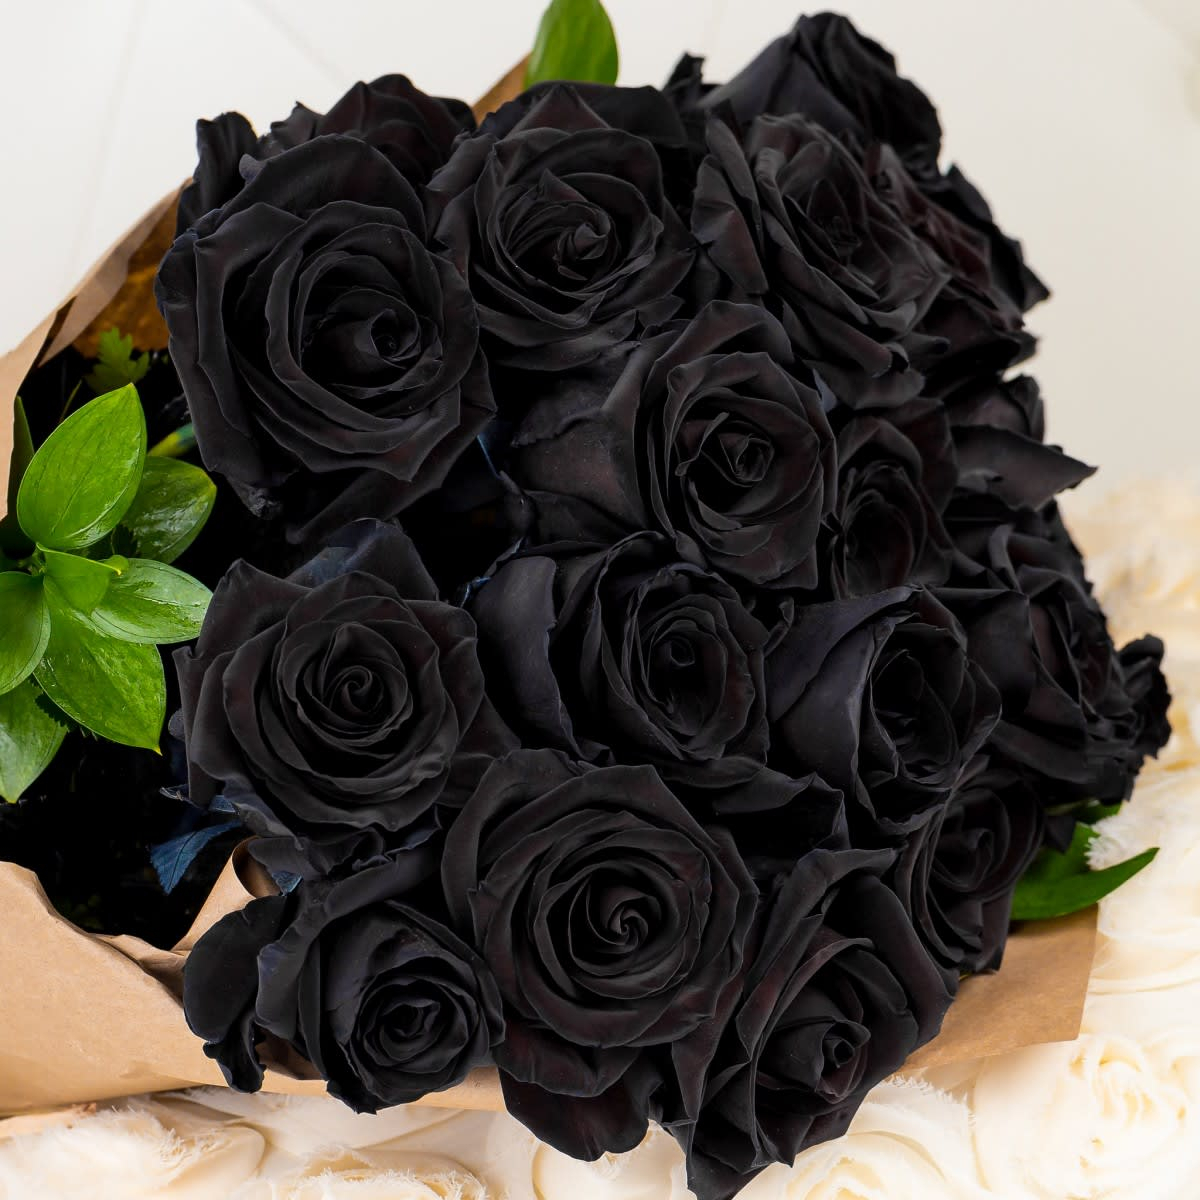 black rose in miami beach, fl | miami beach flowers®